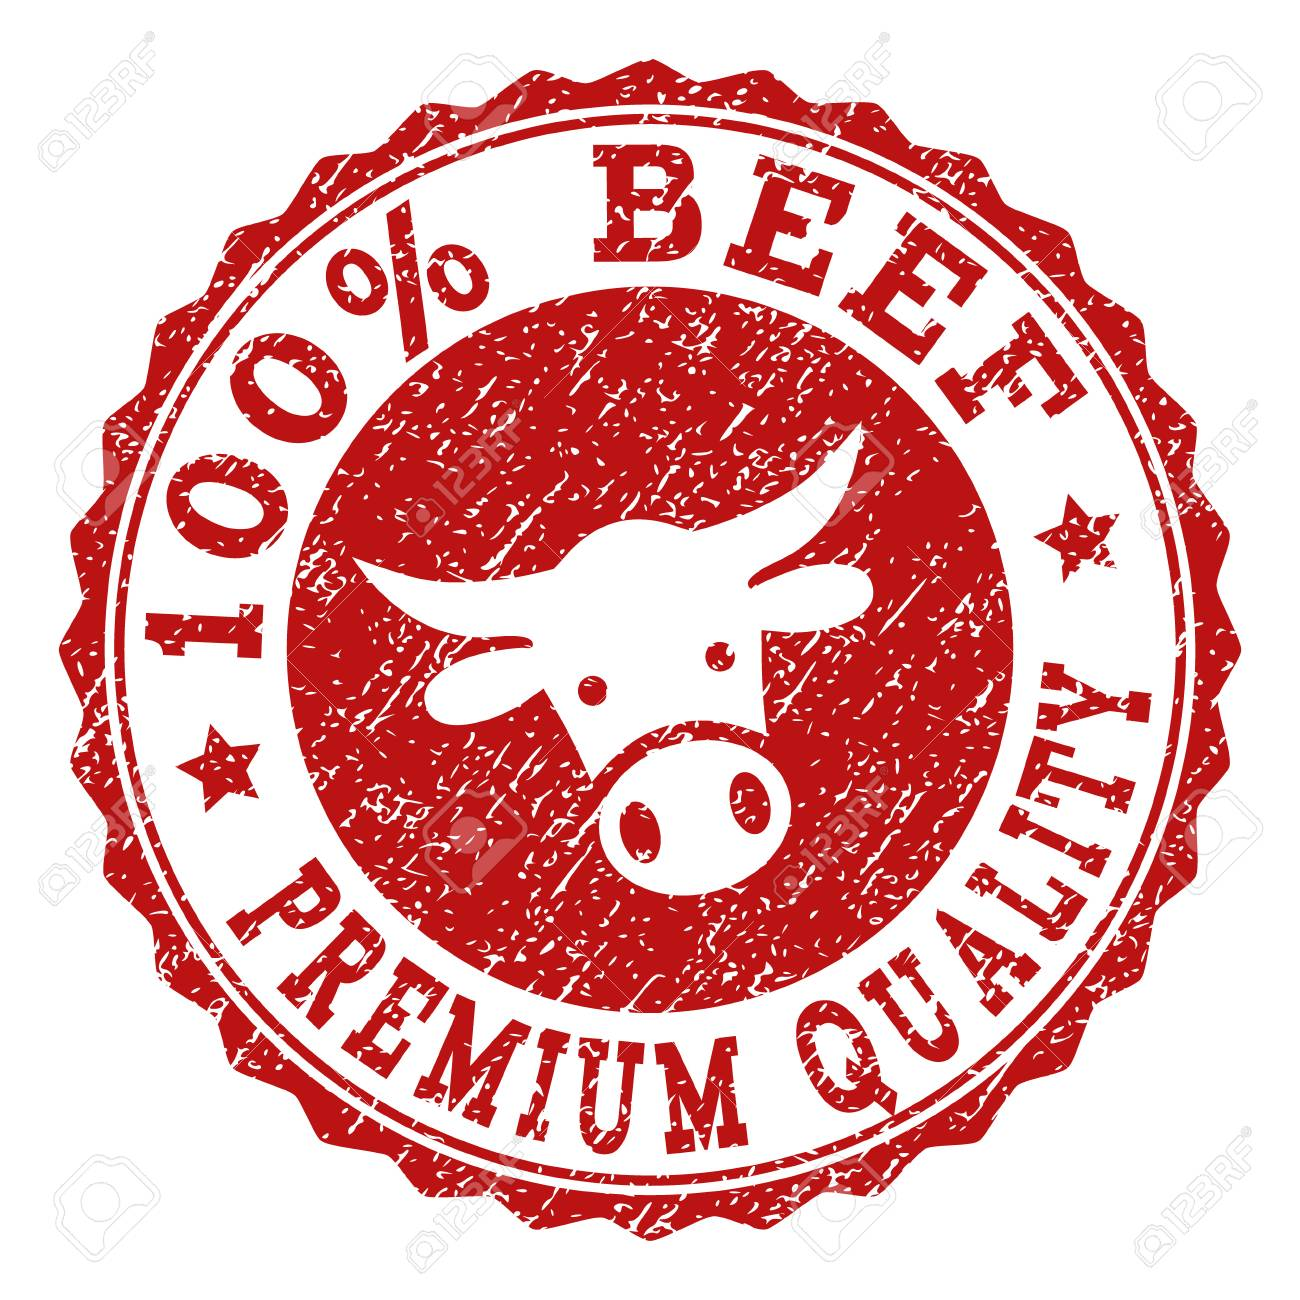 100% Beef Premium Quality stamp seal with grunged texture. Designed with bull head symbol. Red vector rubber stamp with 100% BEEF PREMIUM QUALITY text and rosette round shape. - 111161105